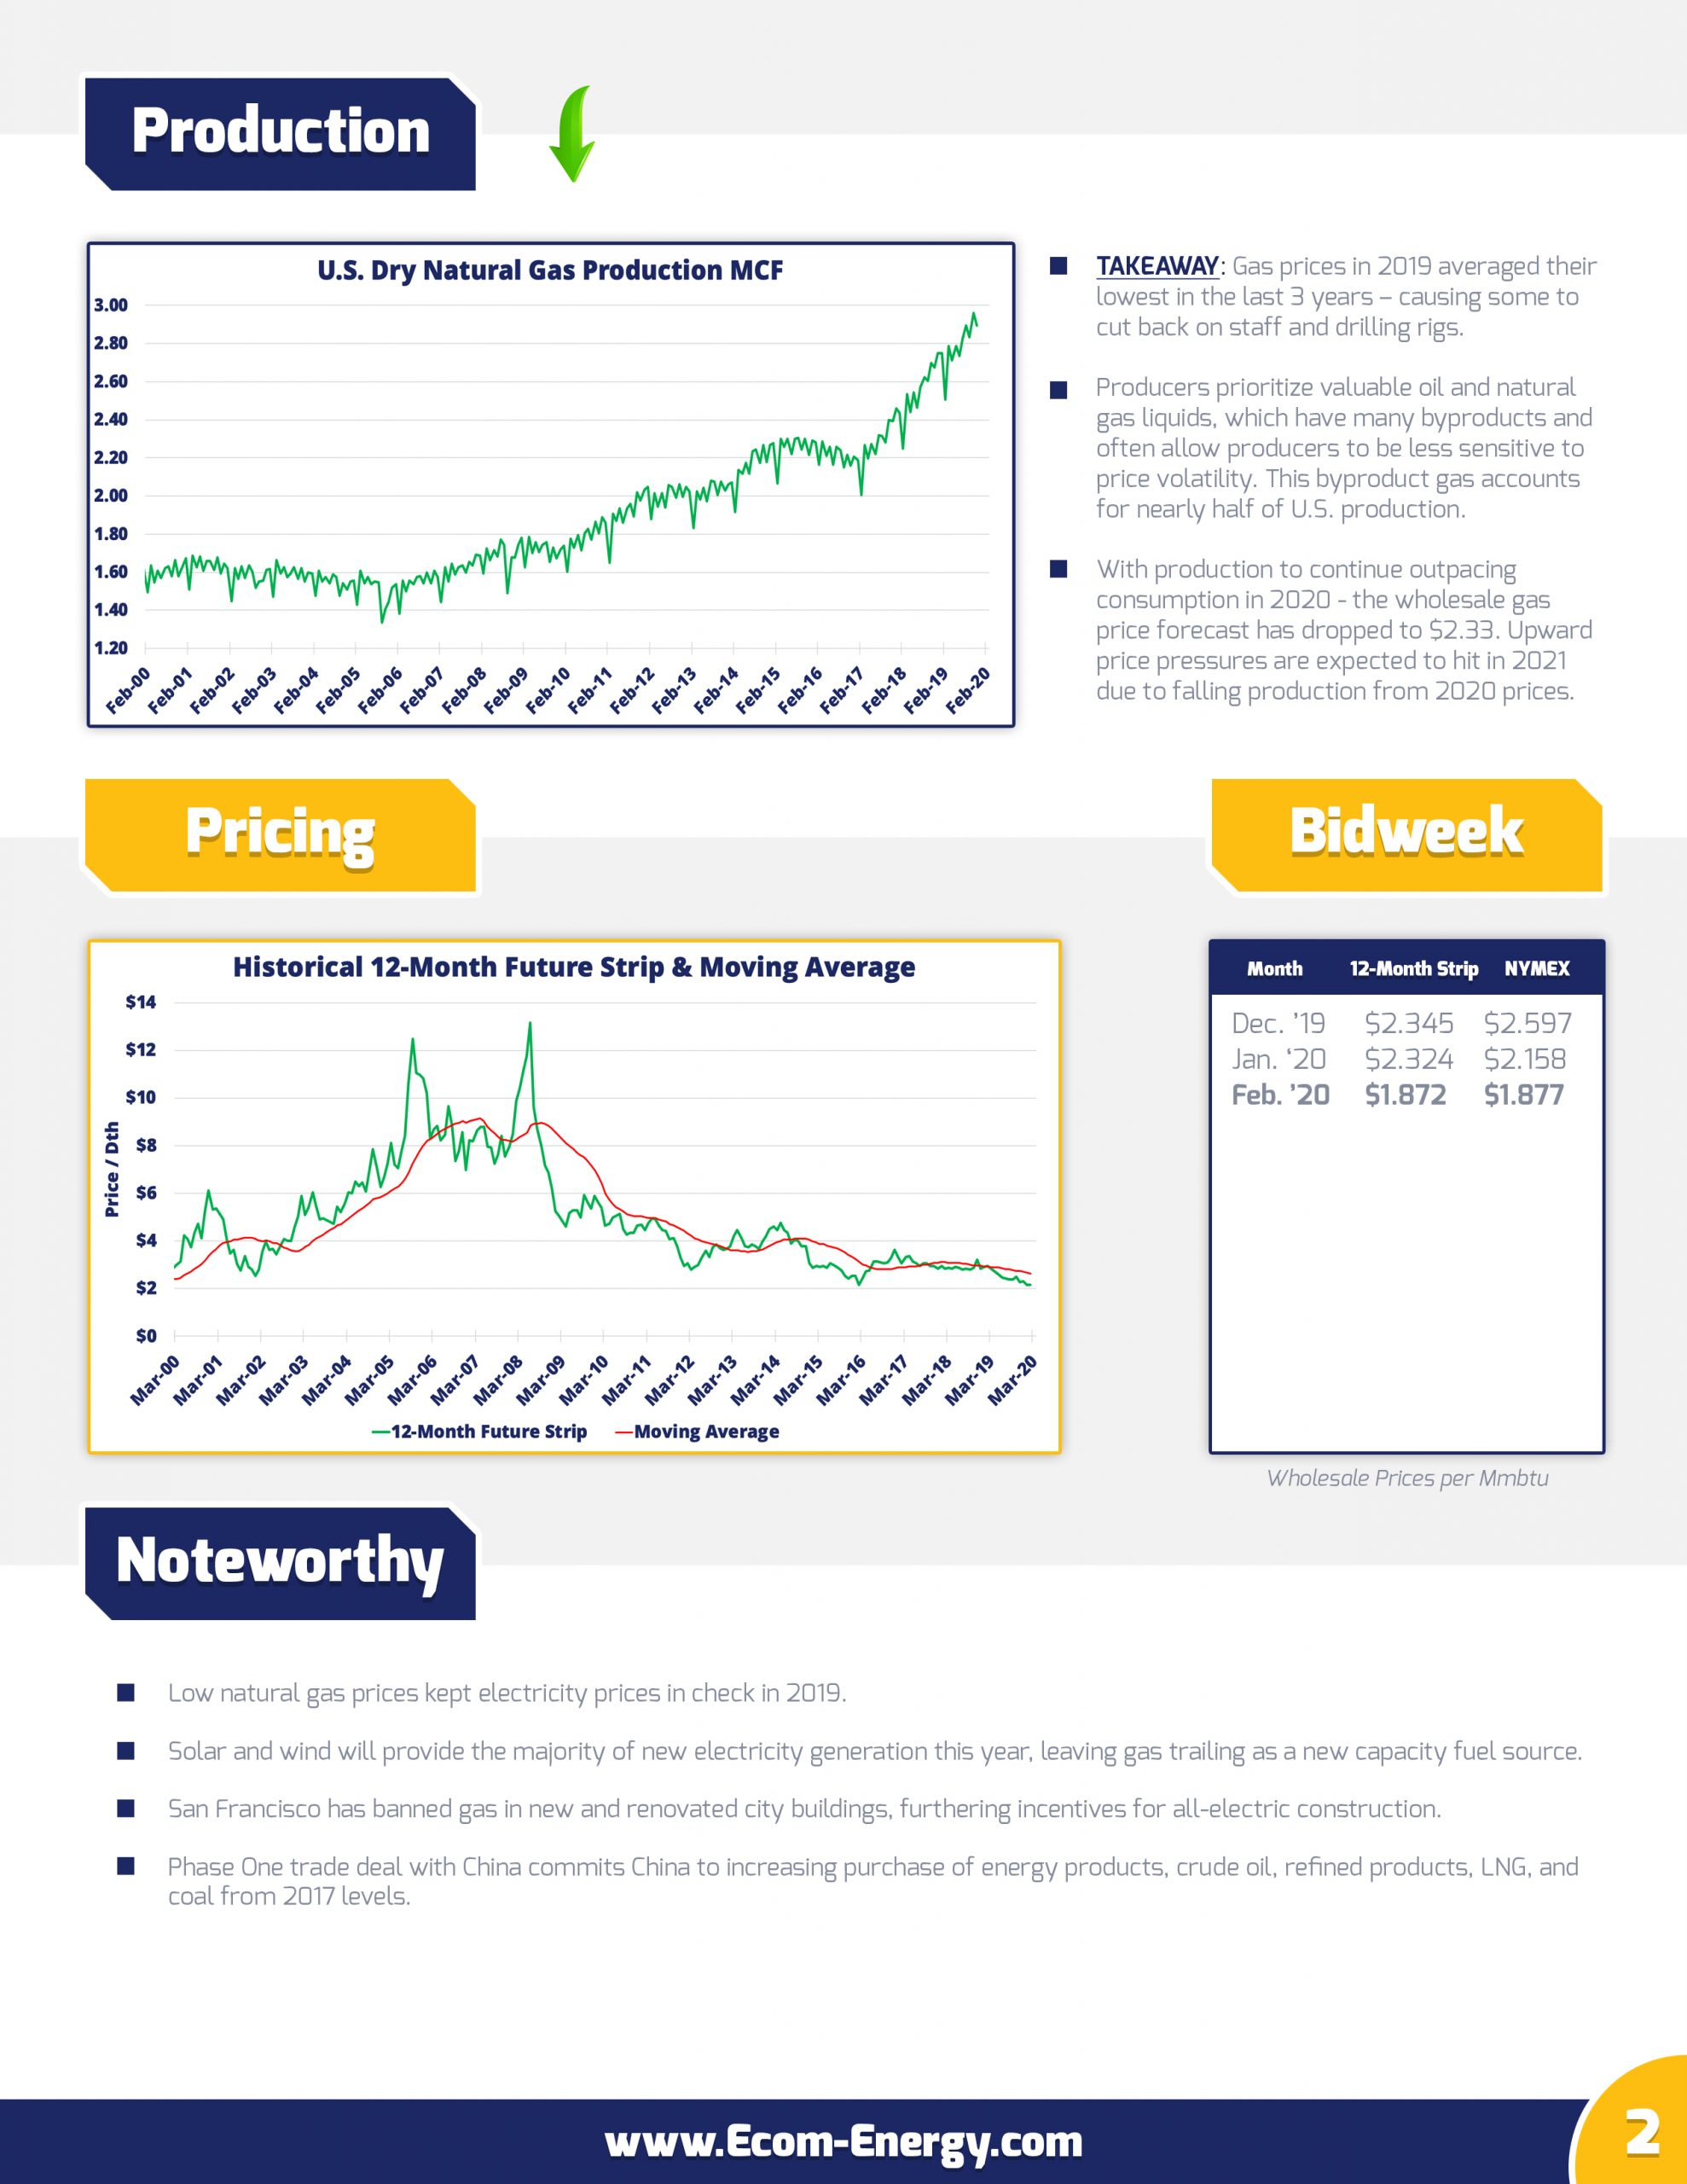 Ecom-Energy's February 2020 Market Update - Page 2